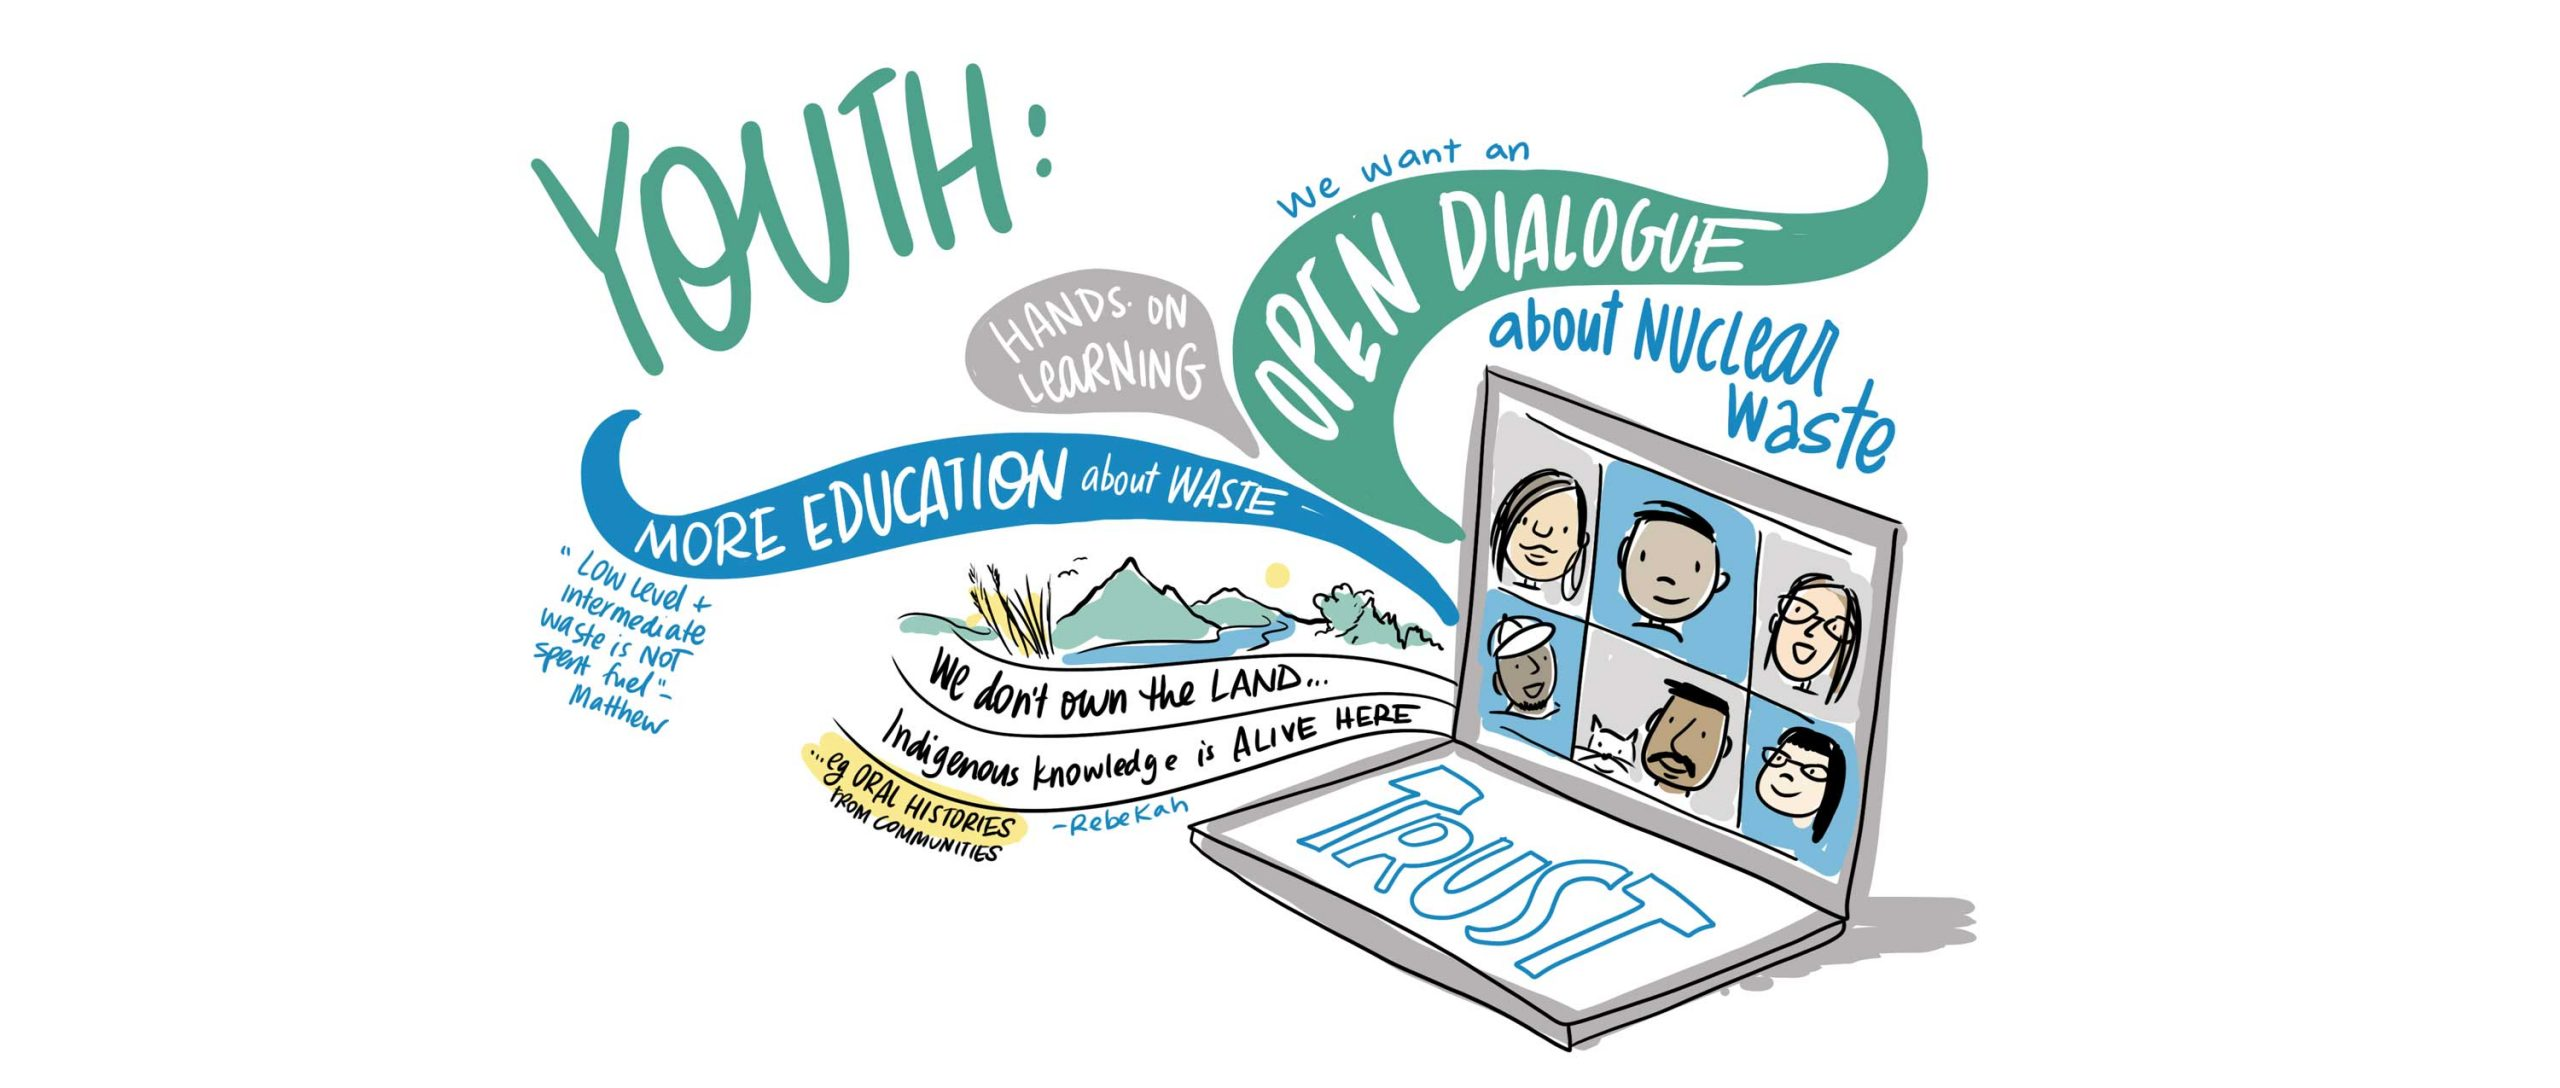 Canadian Radioactive Waste Summit Graphic Recordings Drawing Change youth image